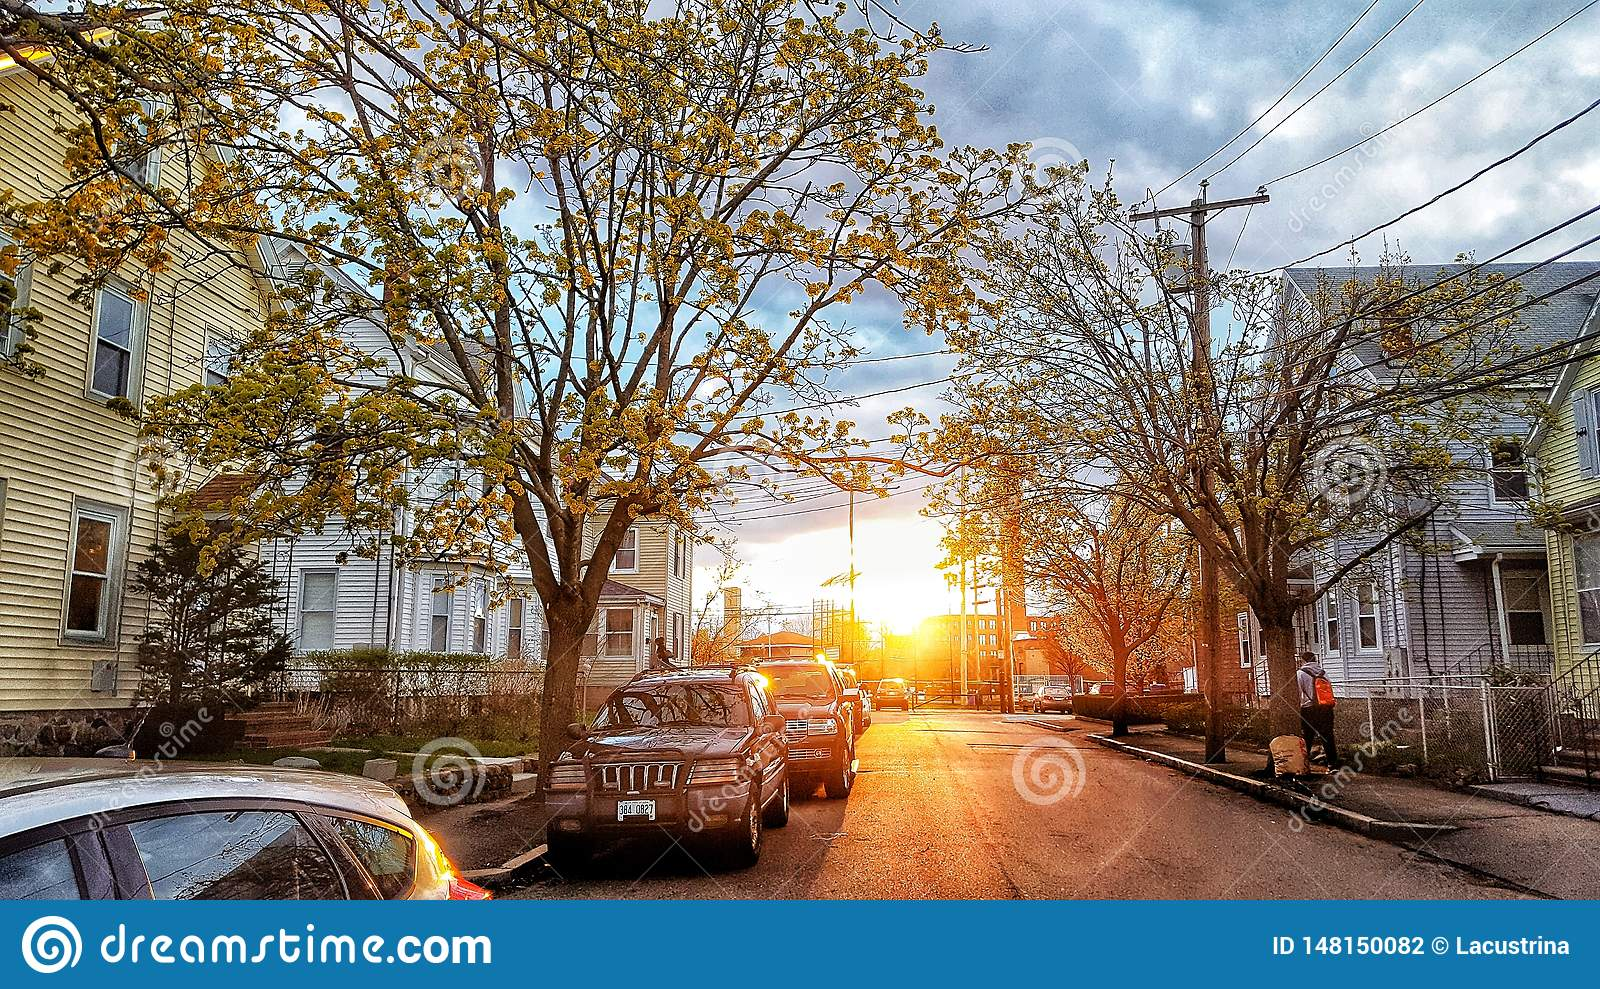 Street view in the sunset.